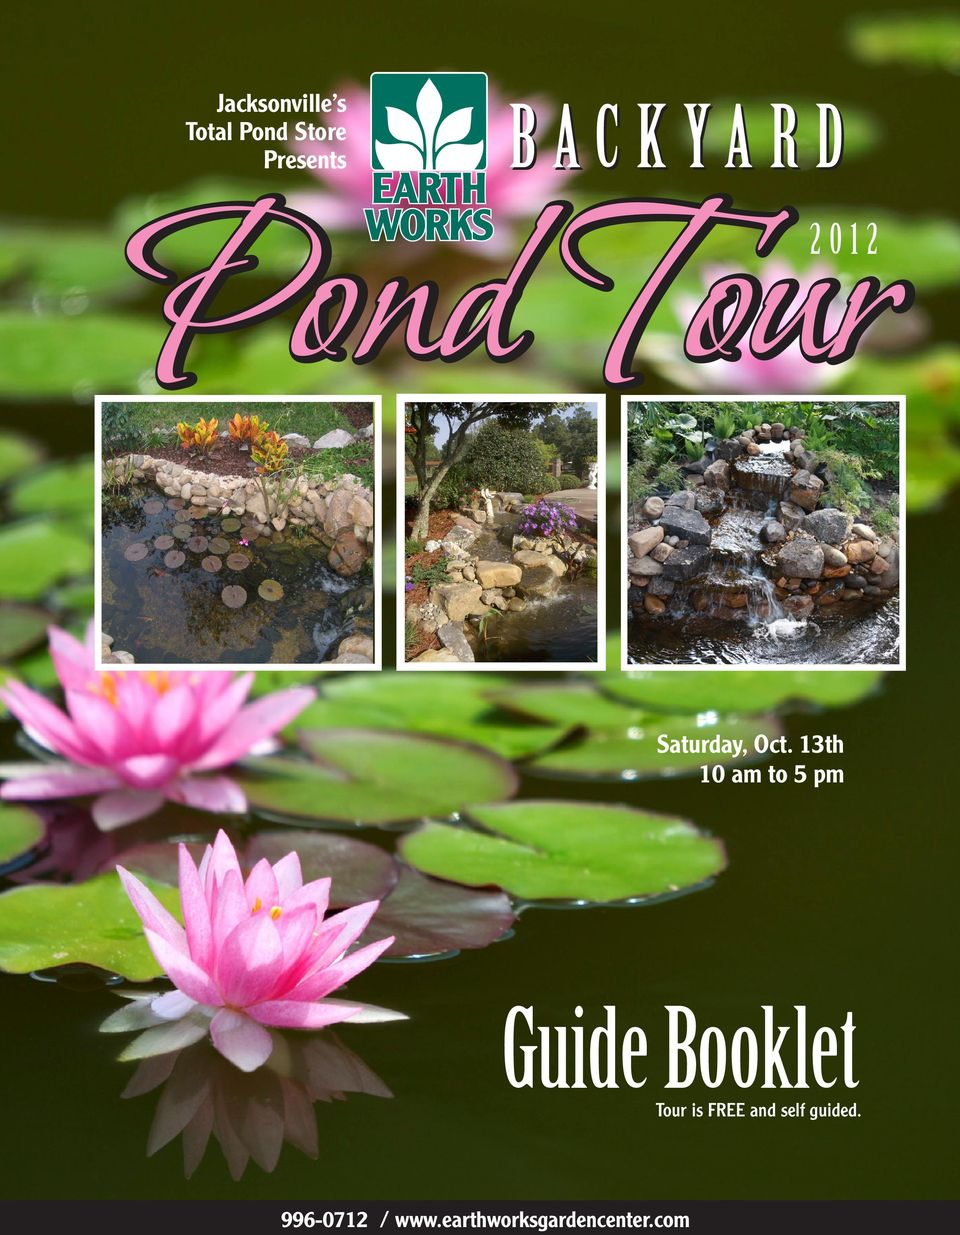 13th 10 am to 5 pm Guide Booklet Tour is FREE